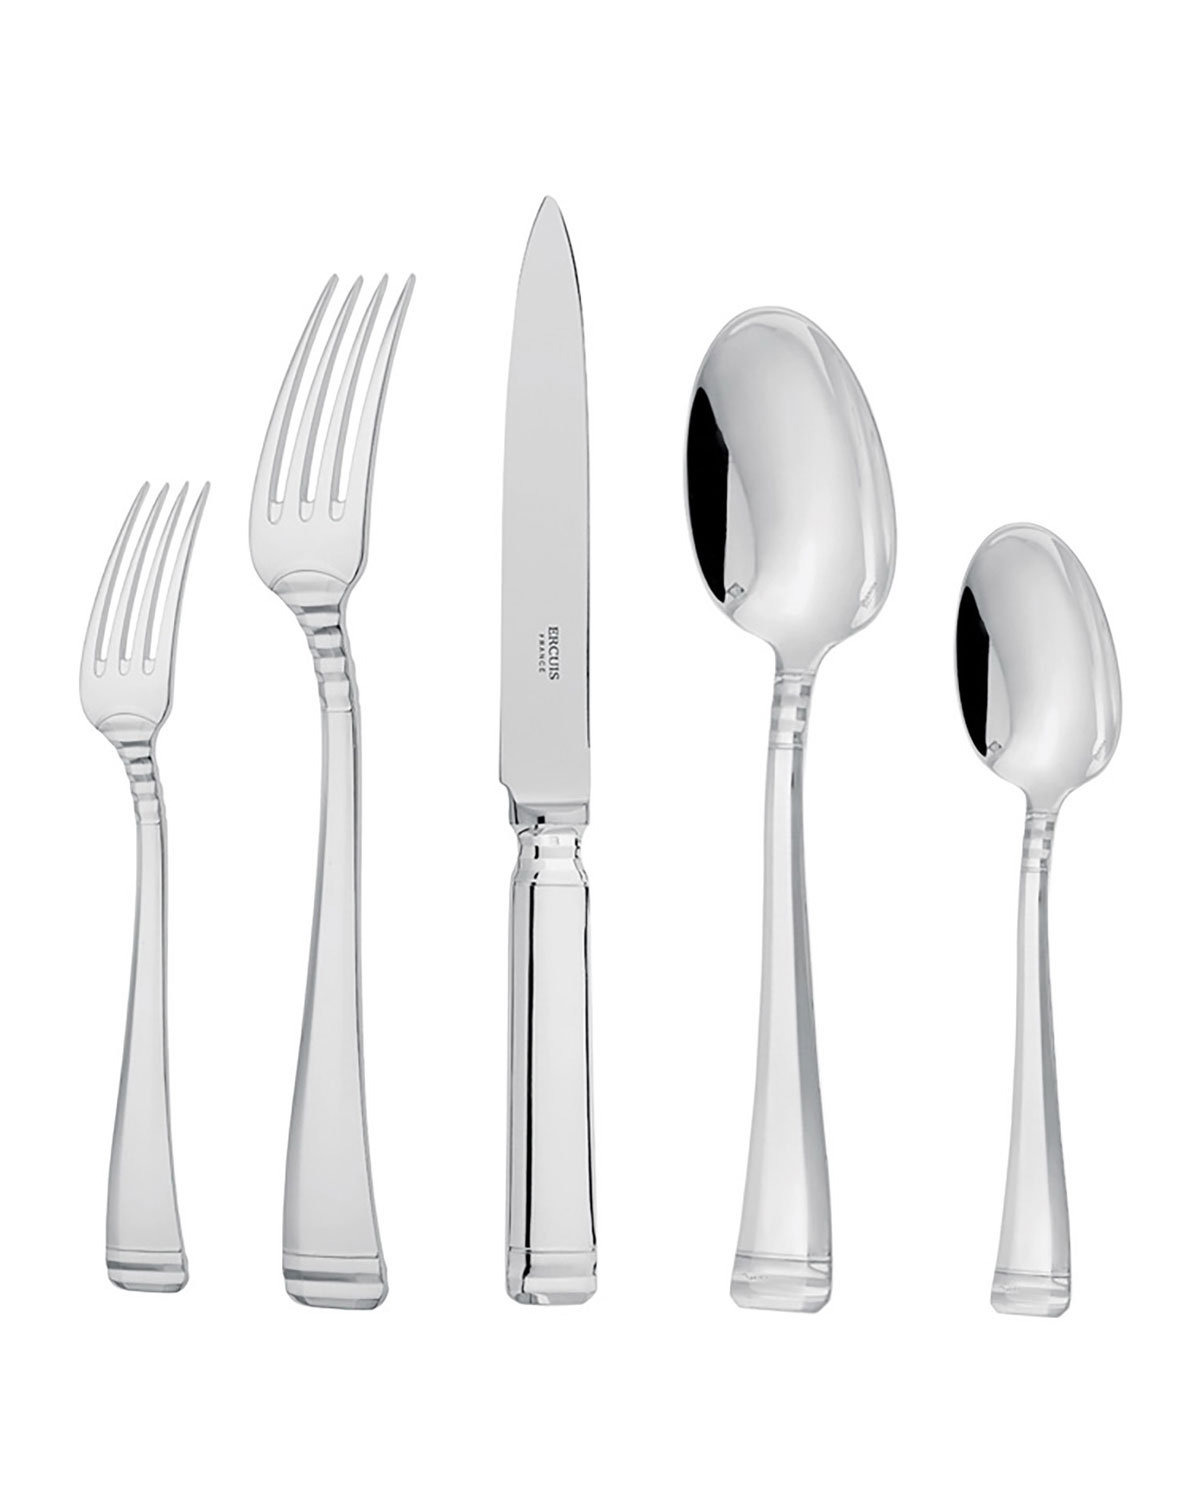 Ercuis Flatwares NIL SILVER PLATED 5-PIECE FLATWARE PLACE SETTING